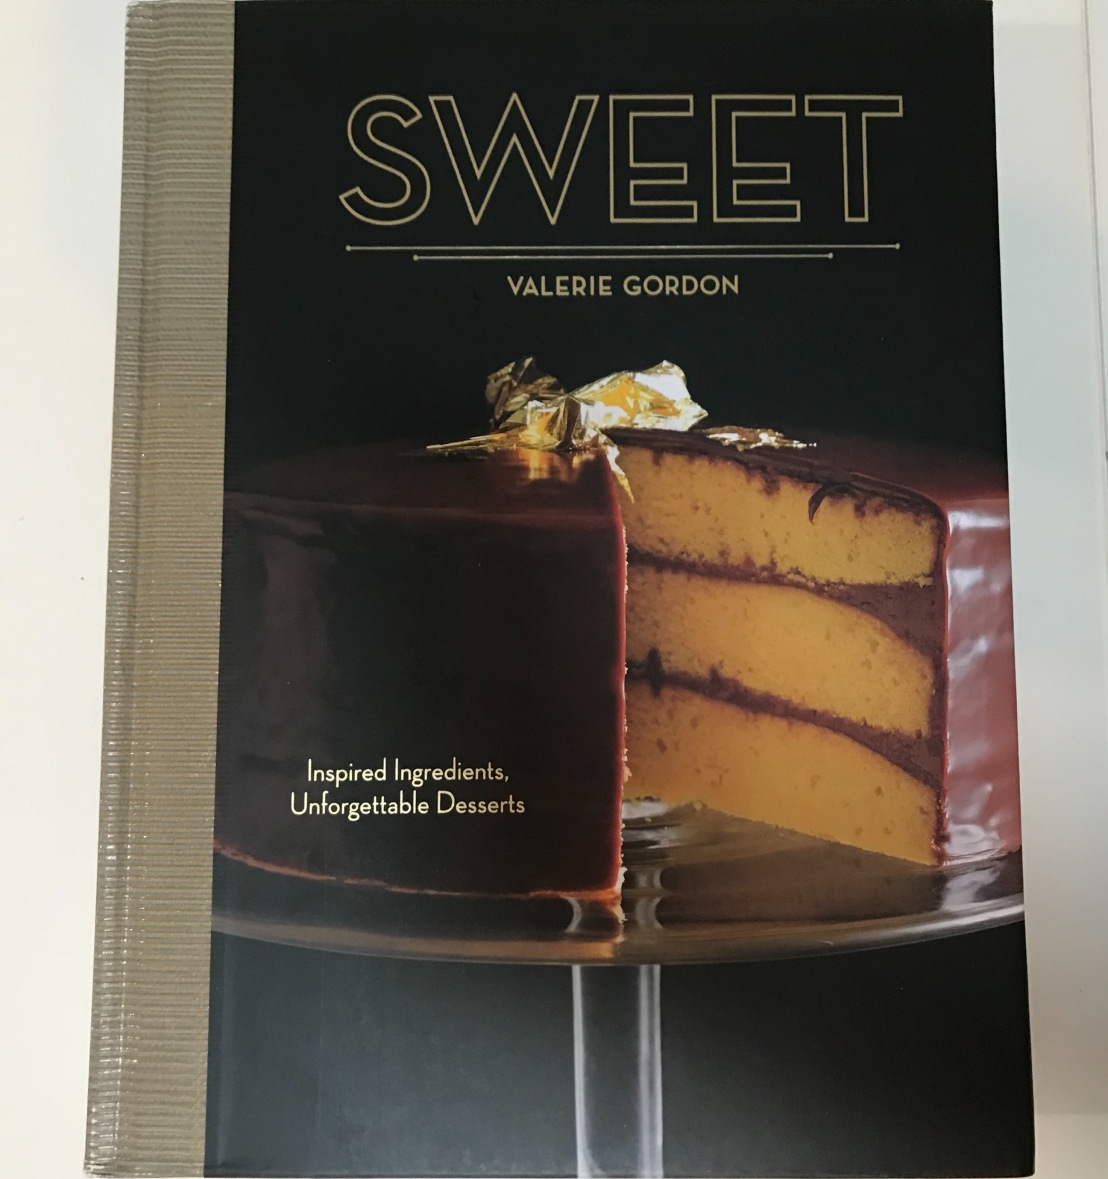 New Addition: Sweet by Valerie Gordon!